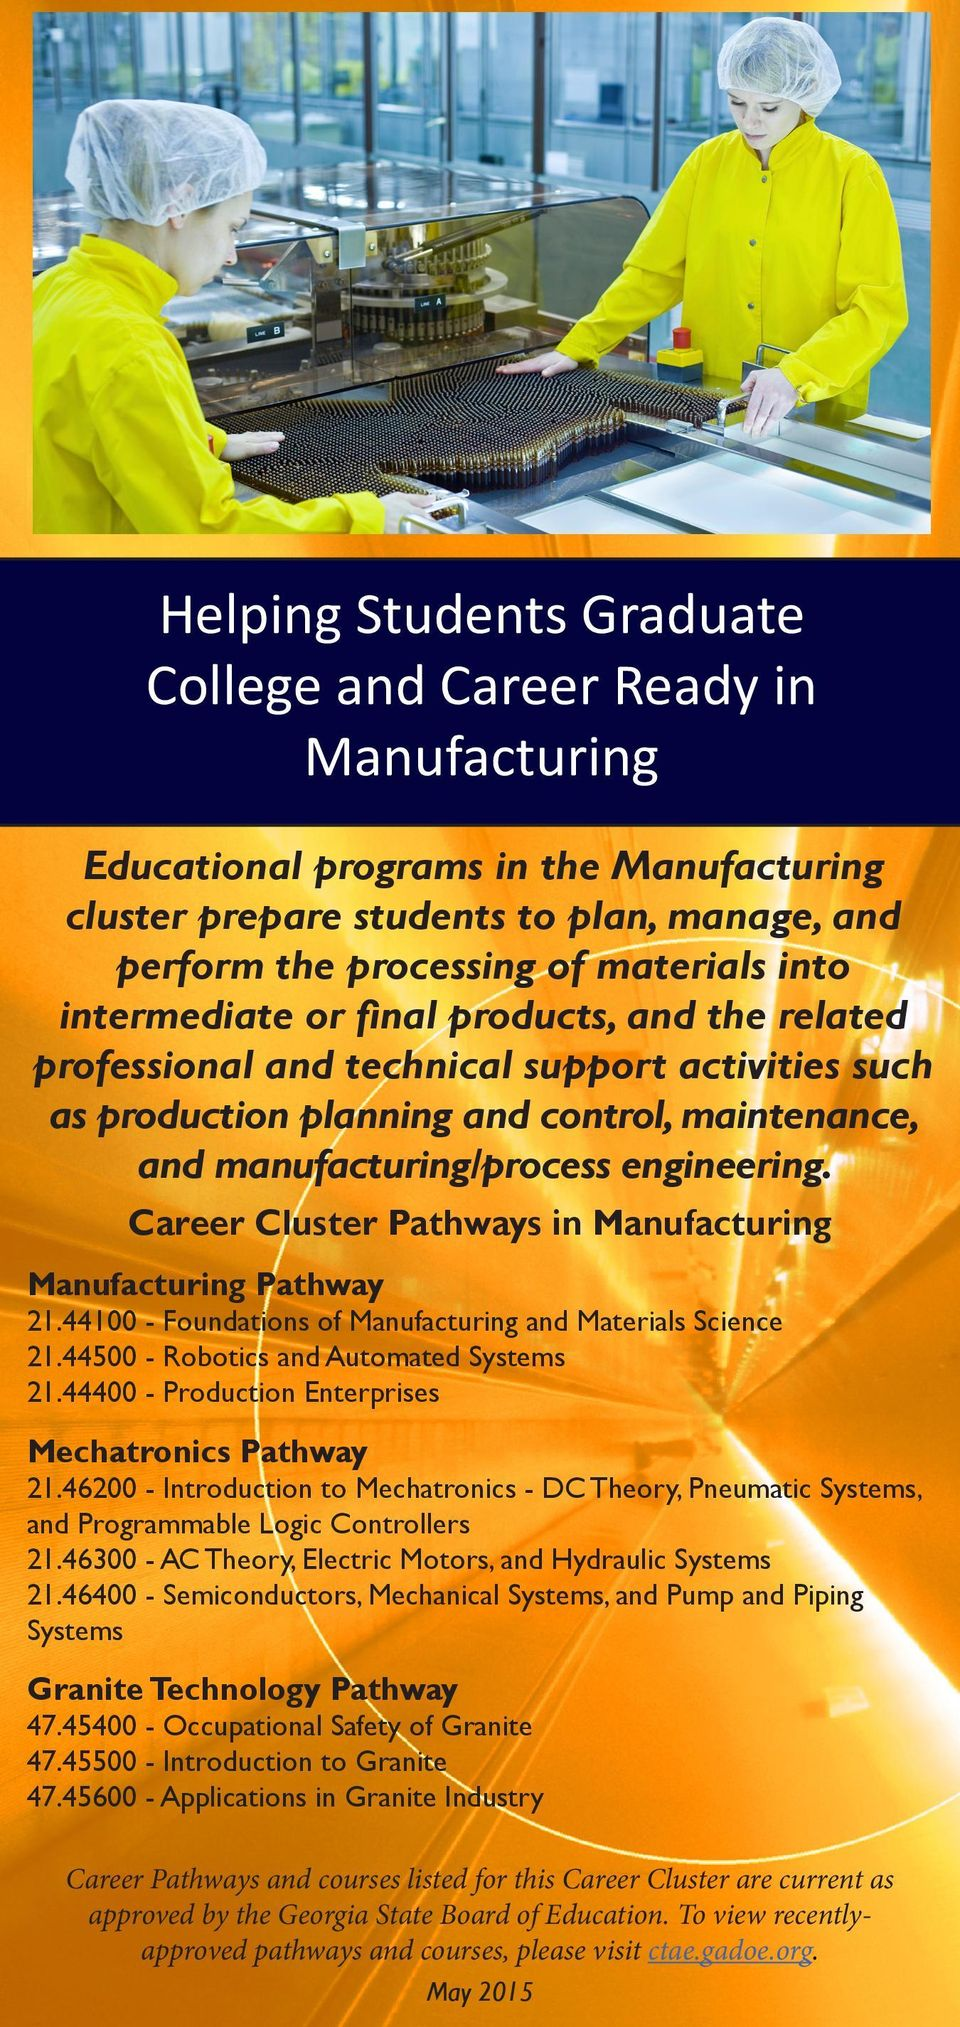 Career Cluster Pathways in Manufacturing Manufacturing Pathway 21.44100 - Foundations of Manufacturing and Materials Science 21.44500 - Robotics and Automated Systems 21.